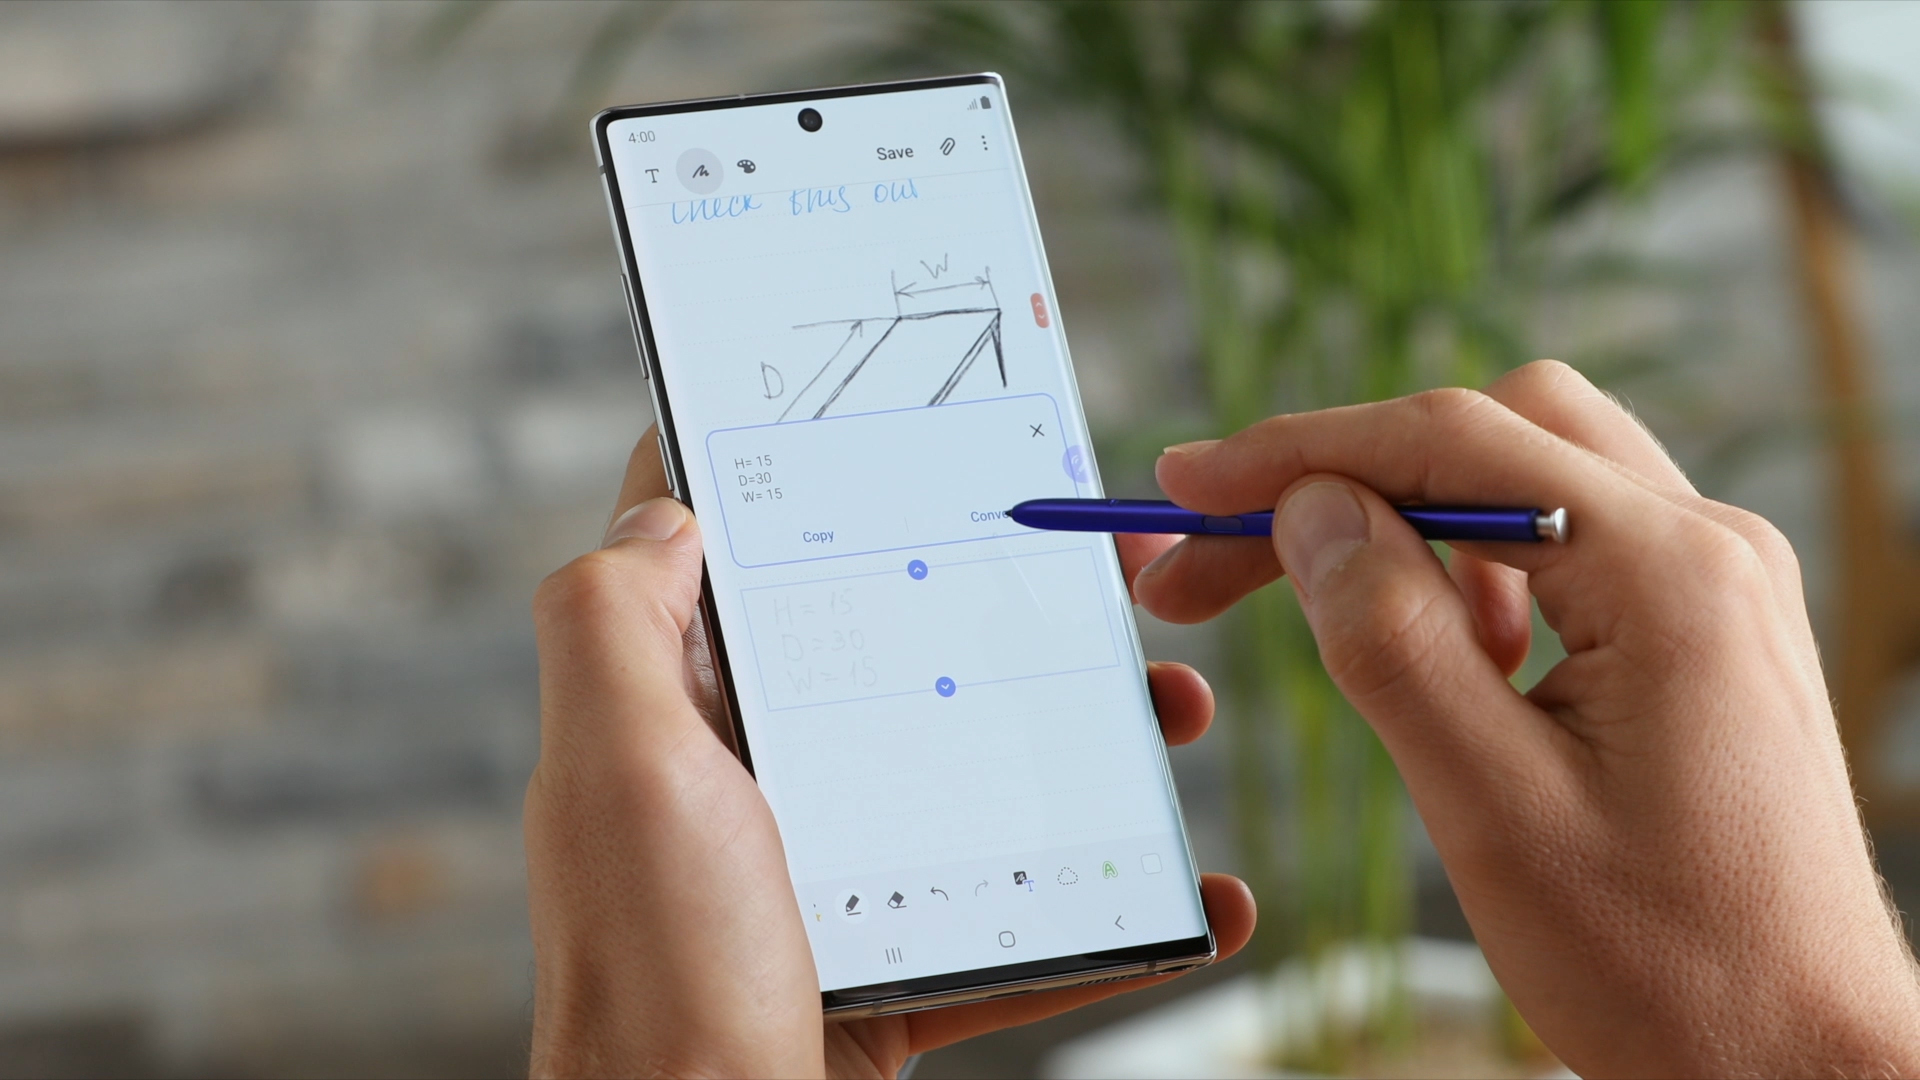 Samsung Galaxy Note 8 drops to lowest price to date on Amazon